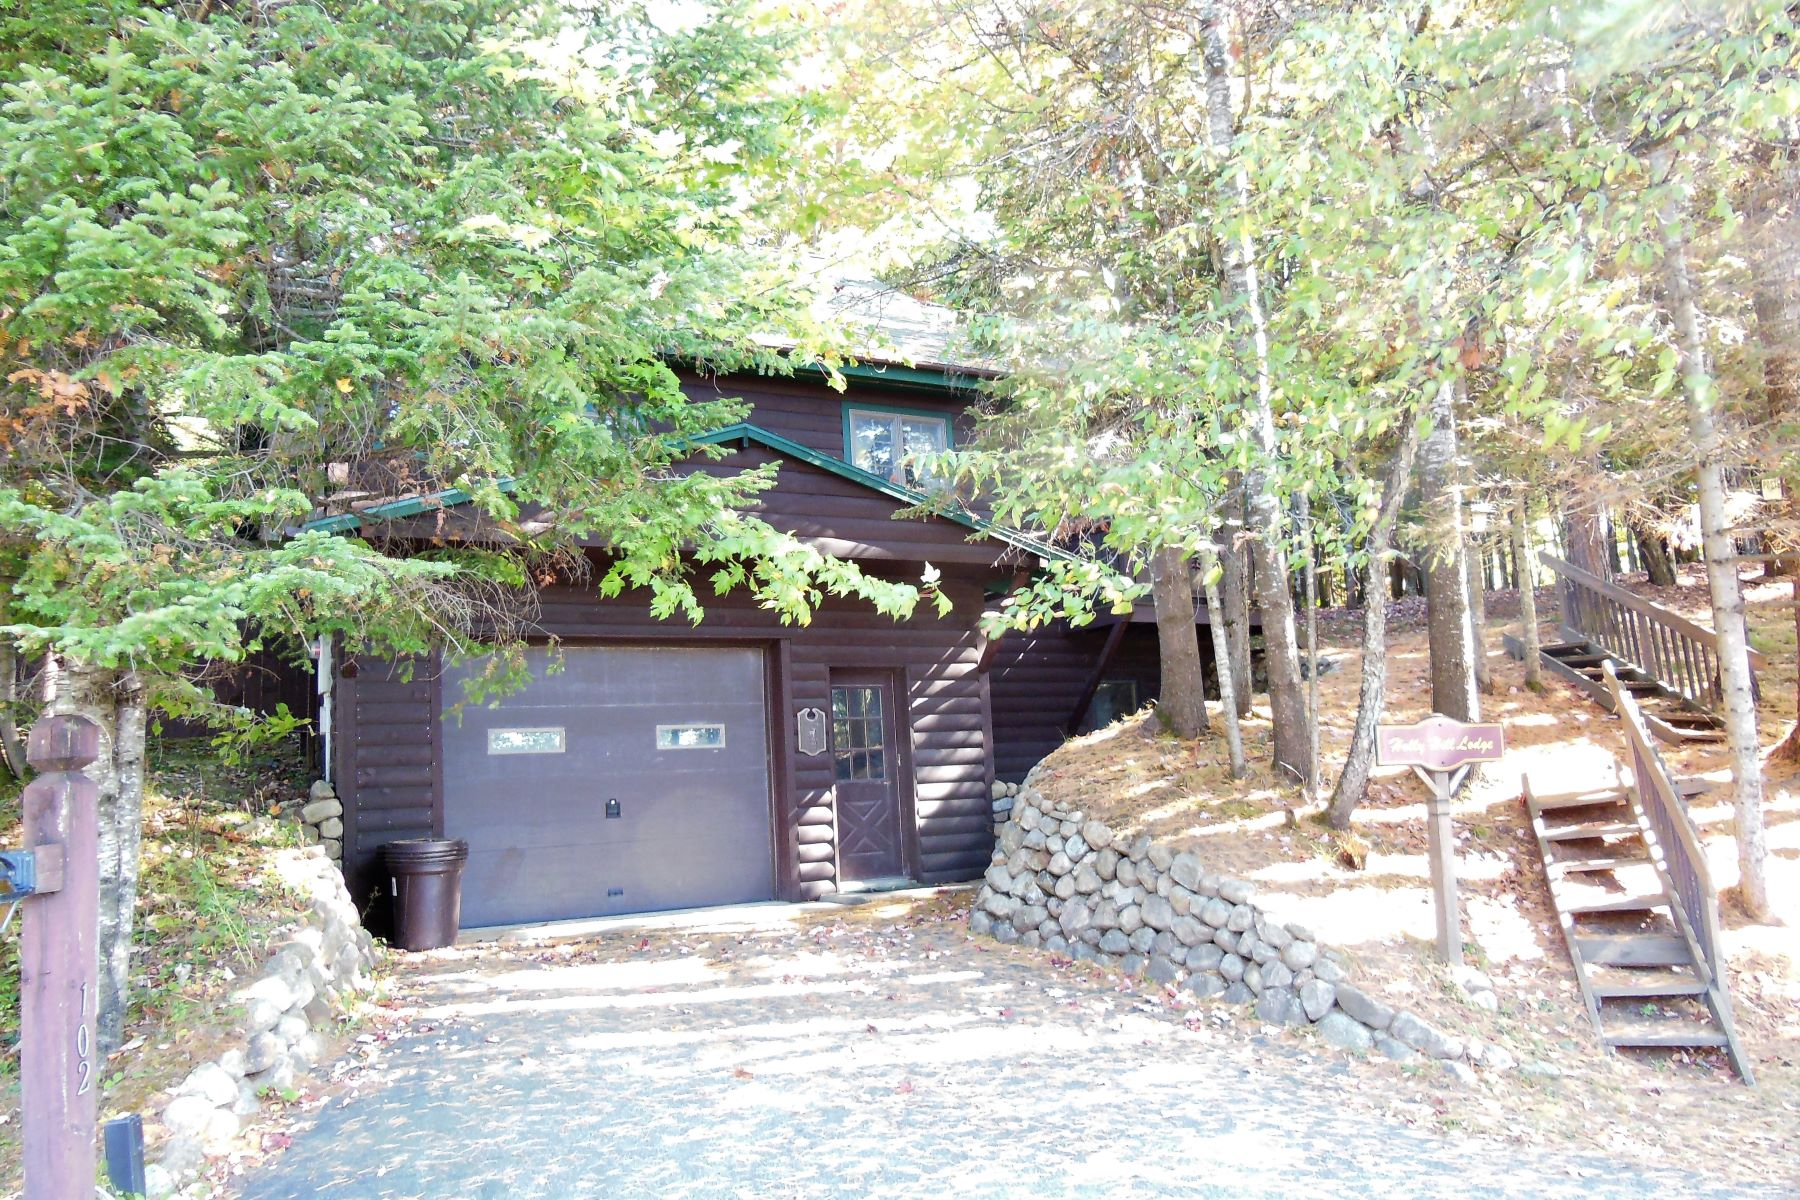 Single Family Home for Sale at Year-round Log Home with Commercial Potential 103 Hollywood Rd. Old Forge, New York 13420 United States